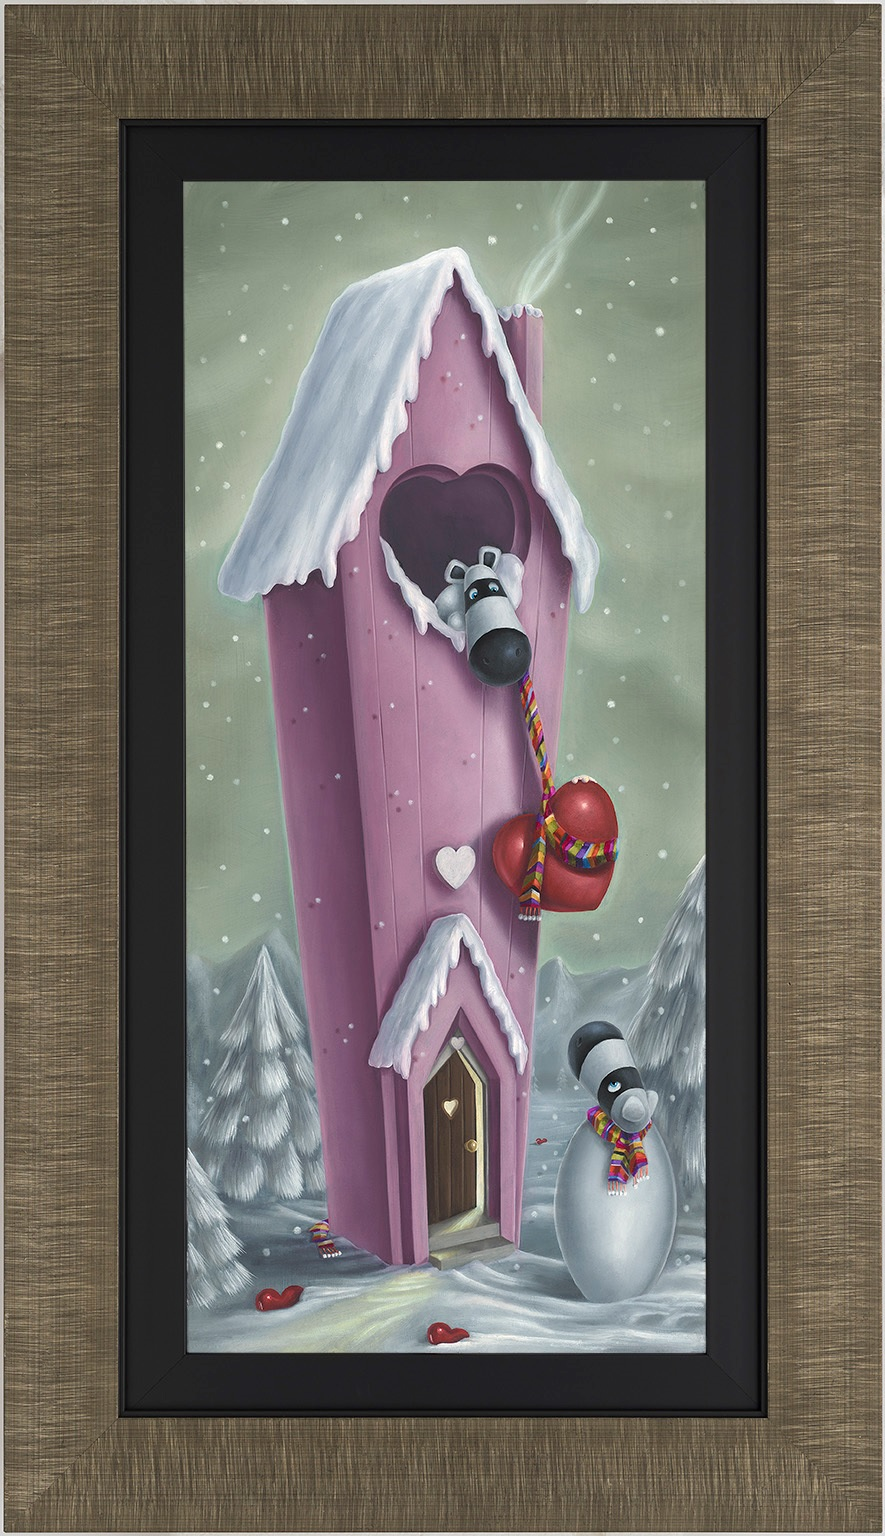 Snow Place Like Home by Peter Smith